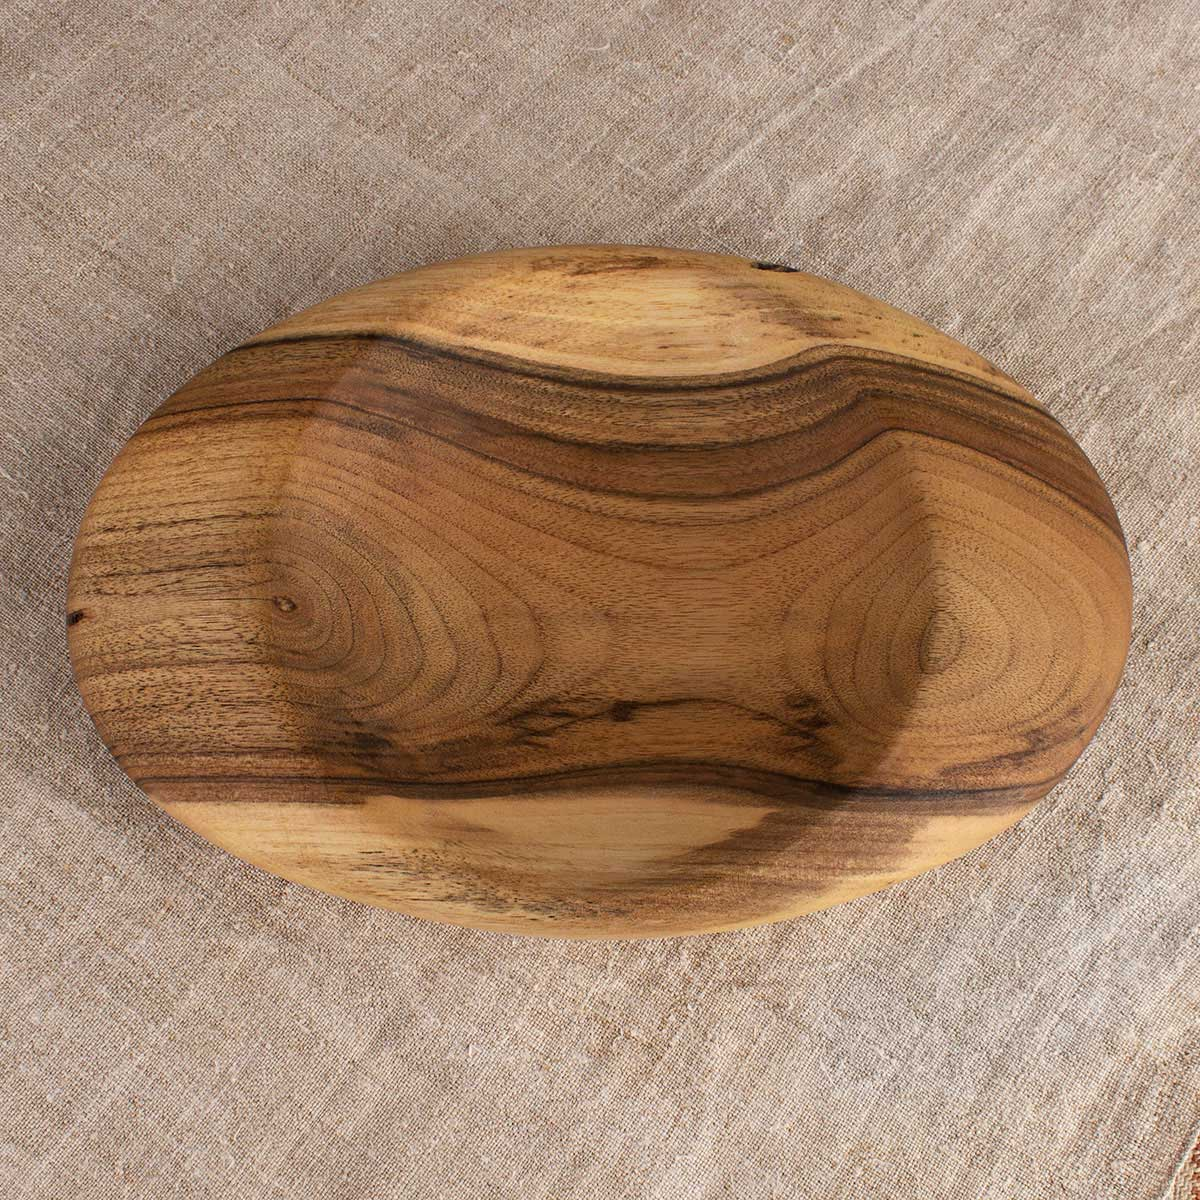 Small rounded bowl with handles, walnut 16 cm